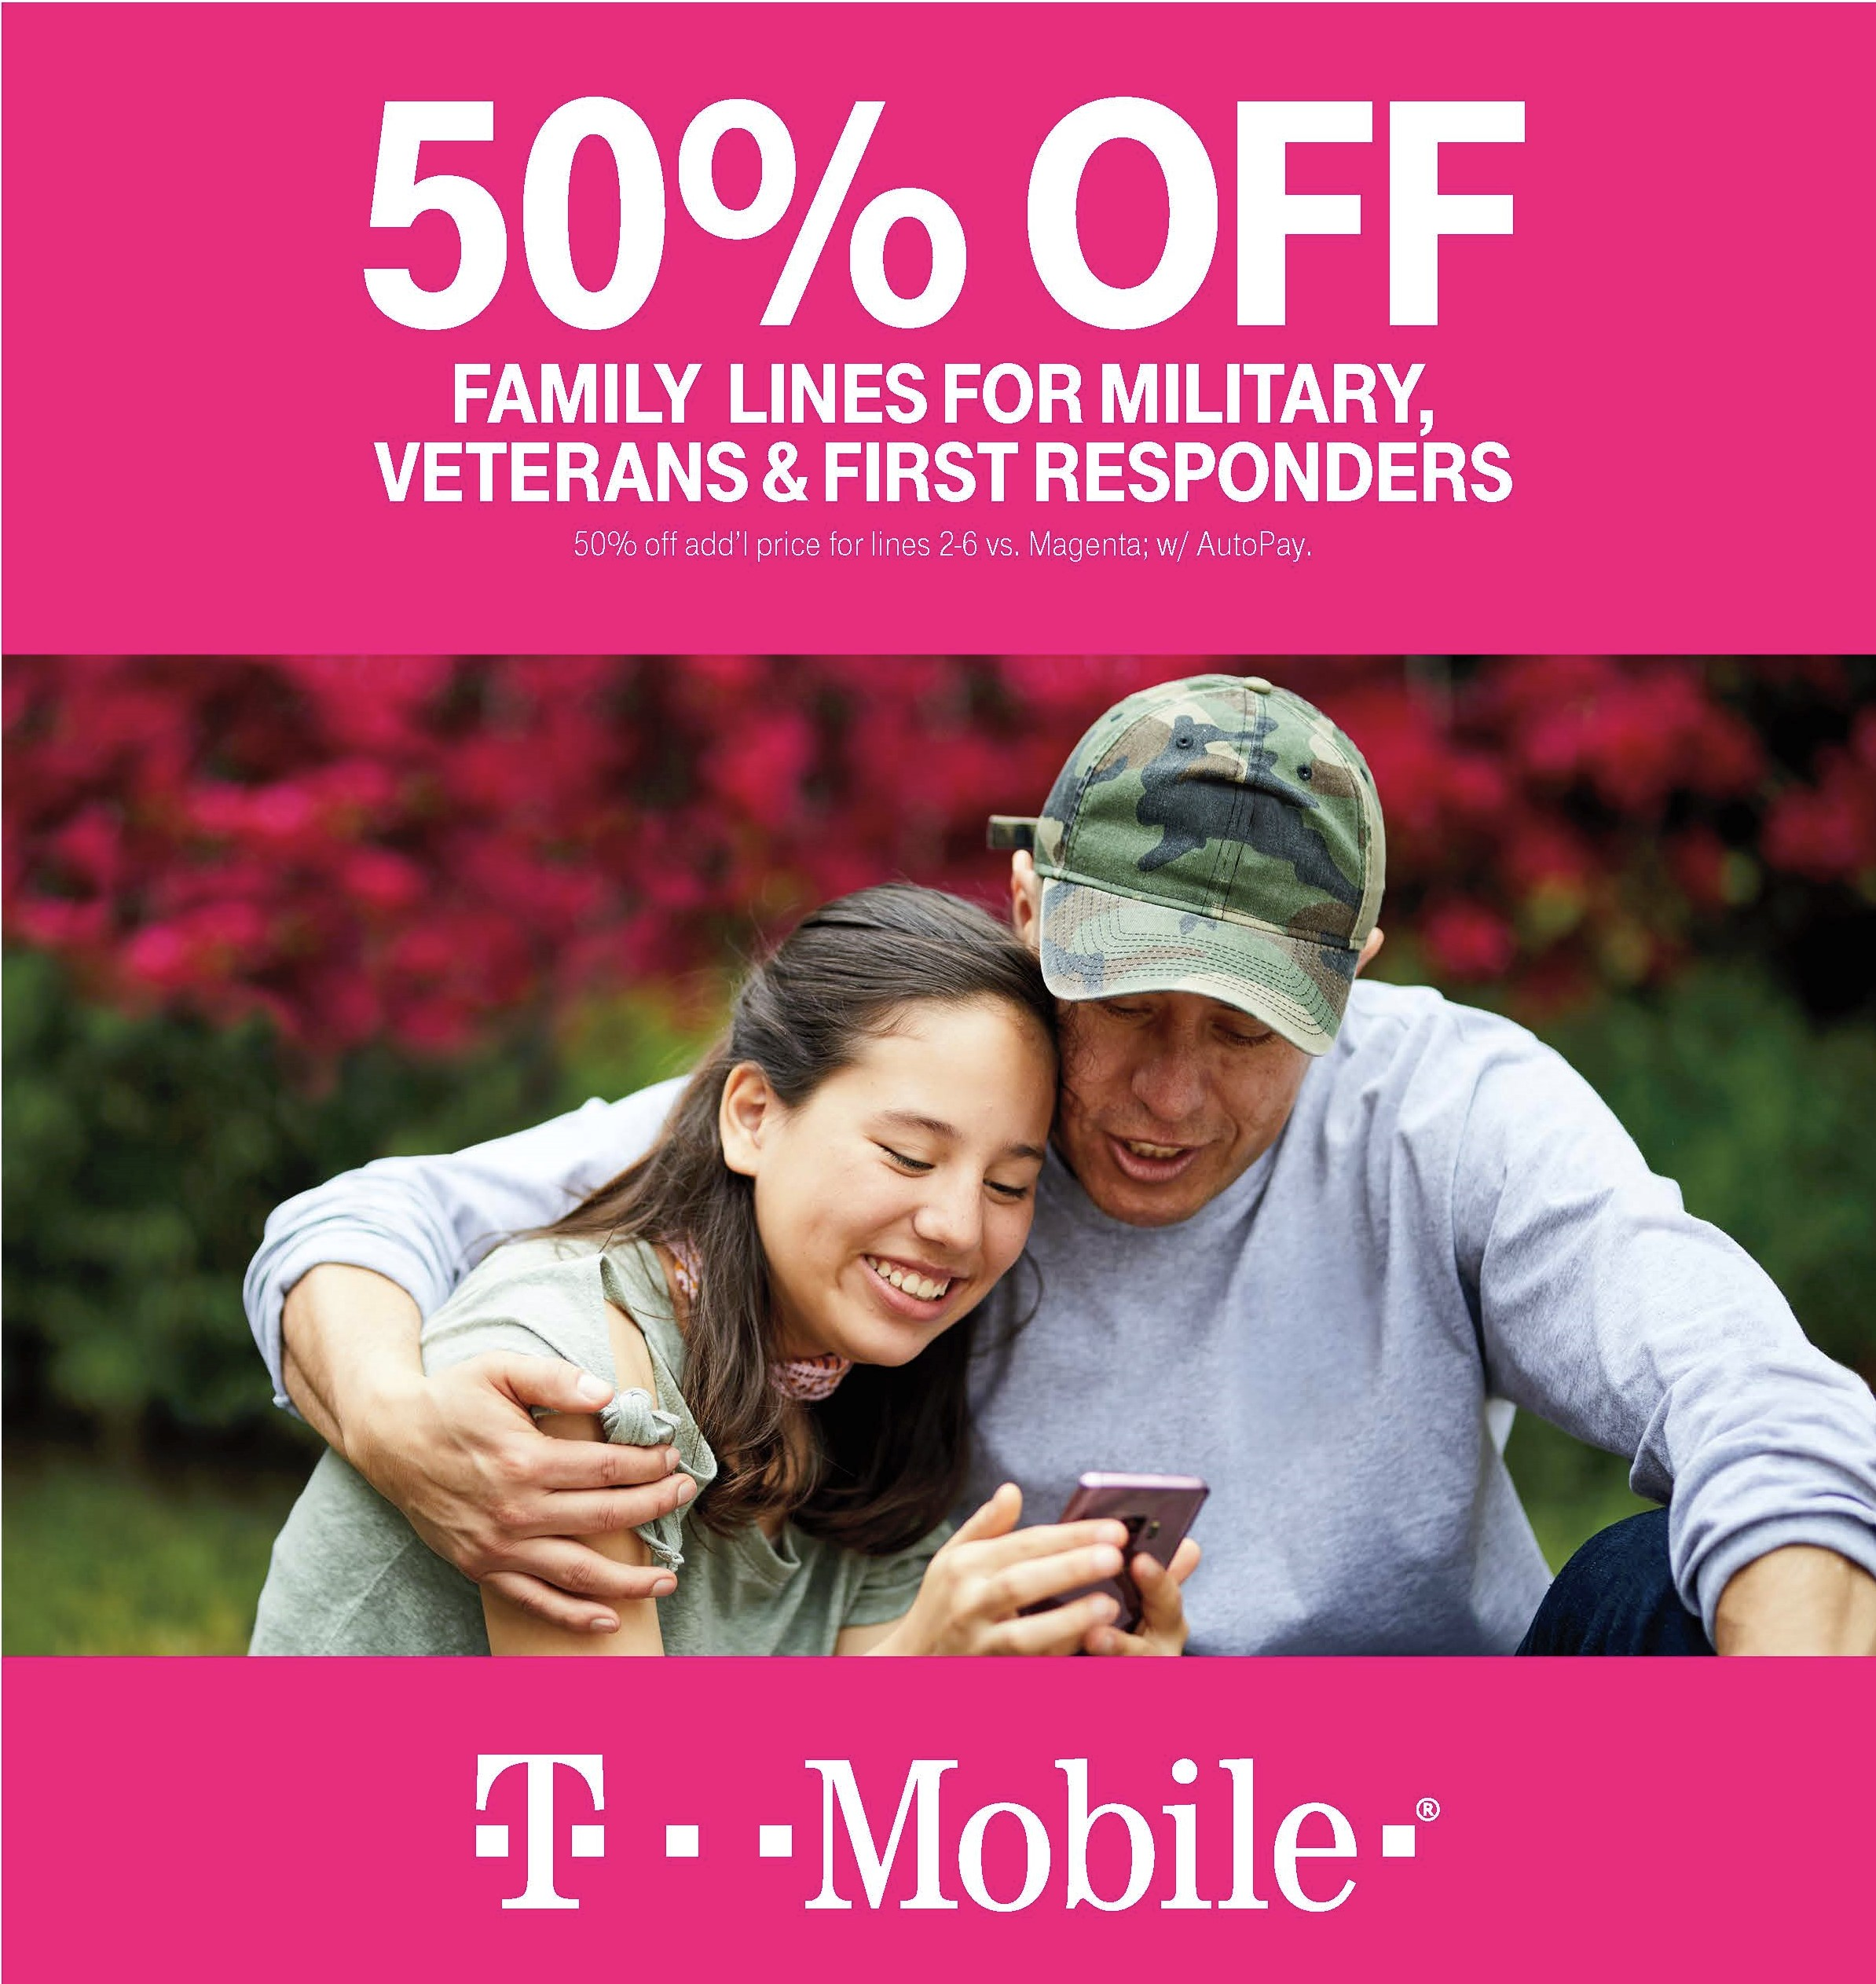 TMobile Military First Responders Samsung Offer Page 1